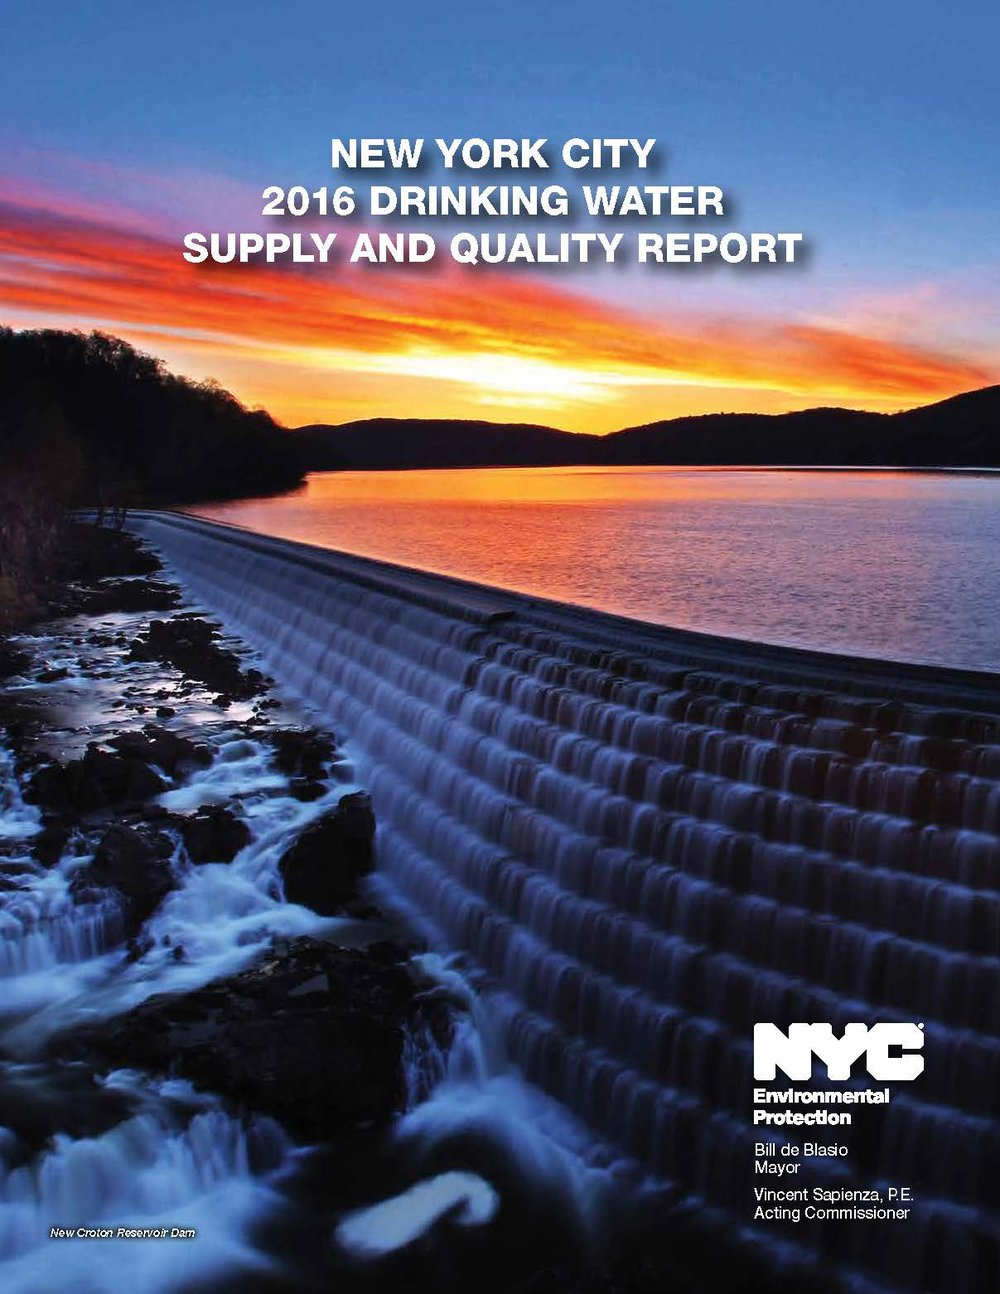 Pages from New-York-City-2016-Drinking-Water-Supply-and-Quality-Report.jpg